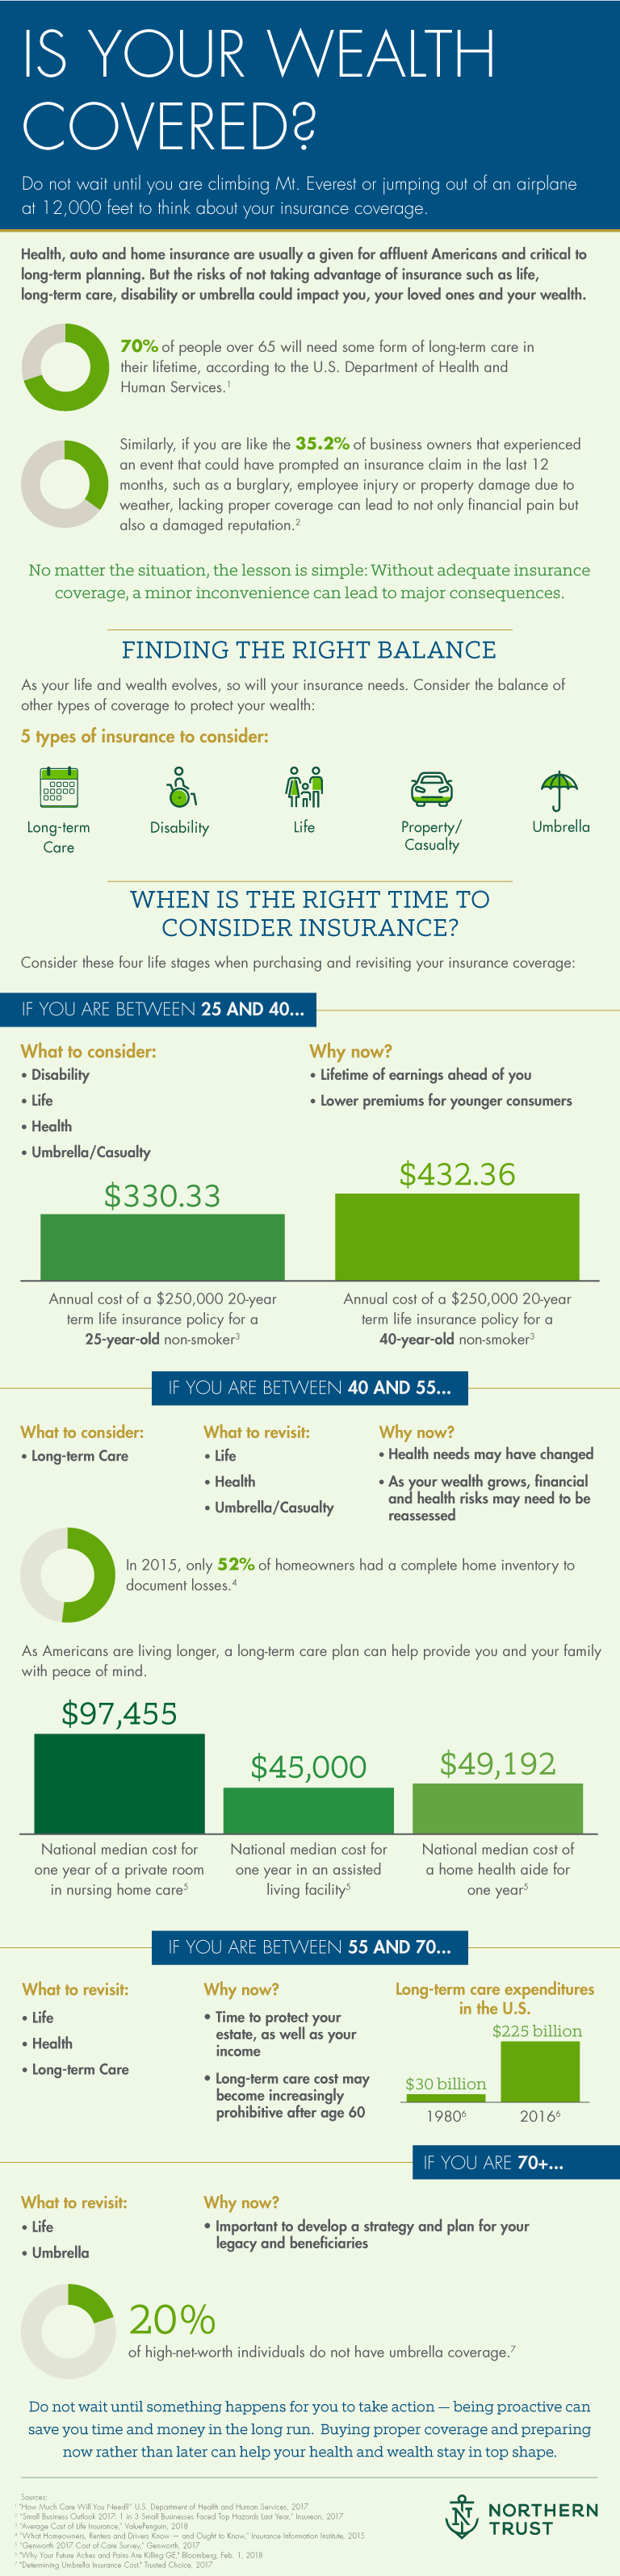 wealth covered infographic